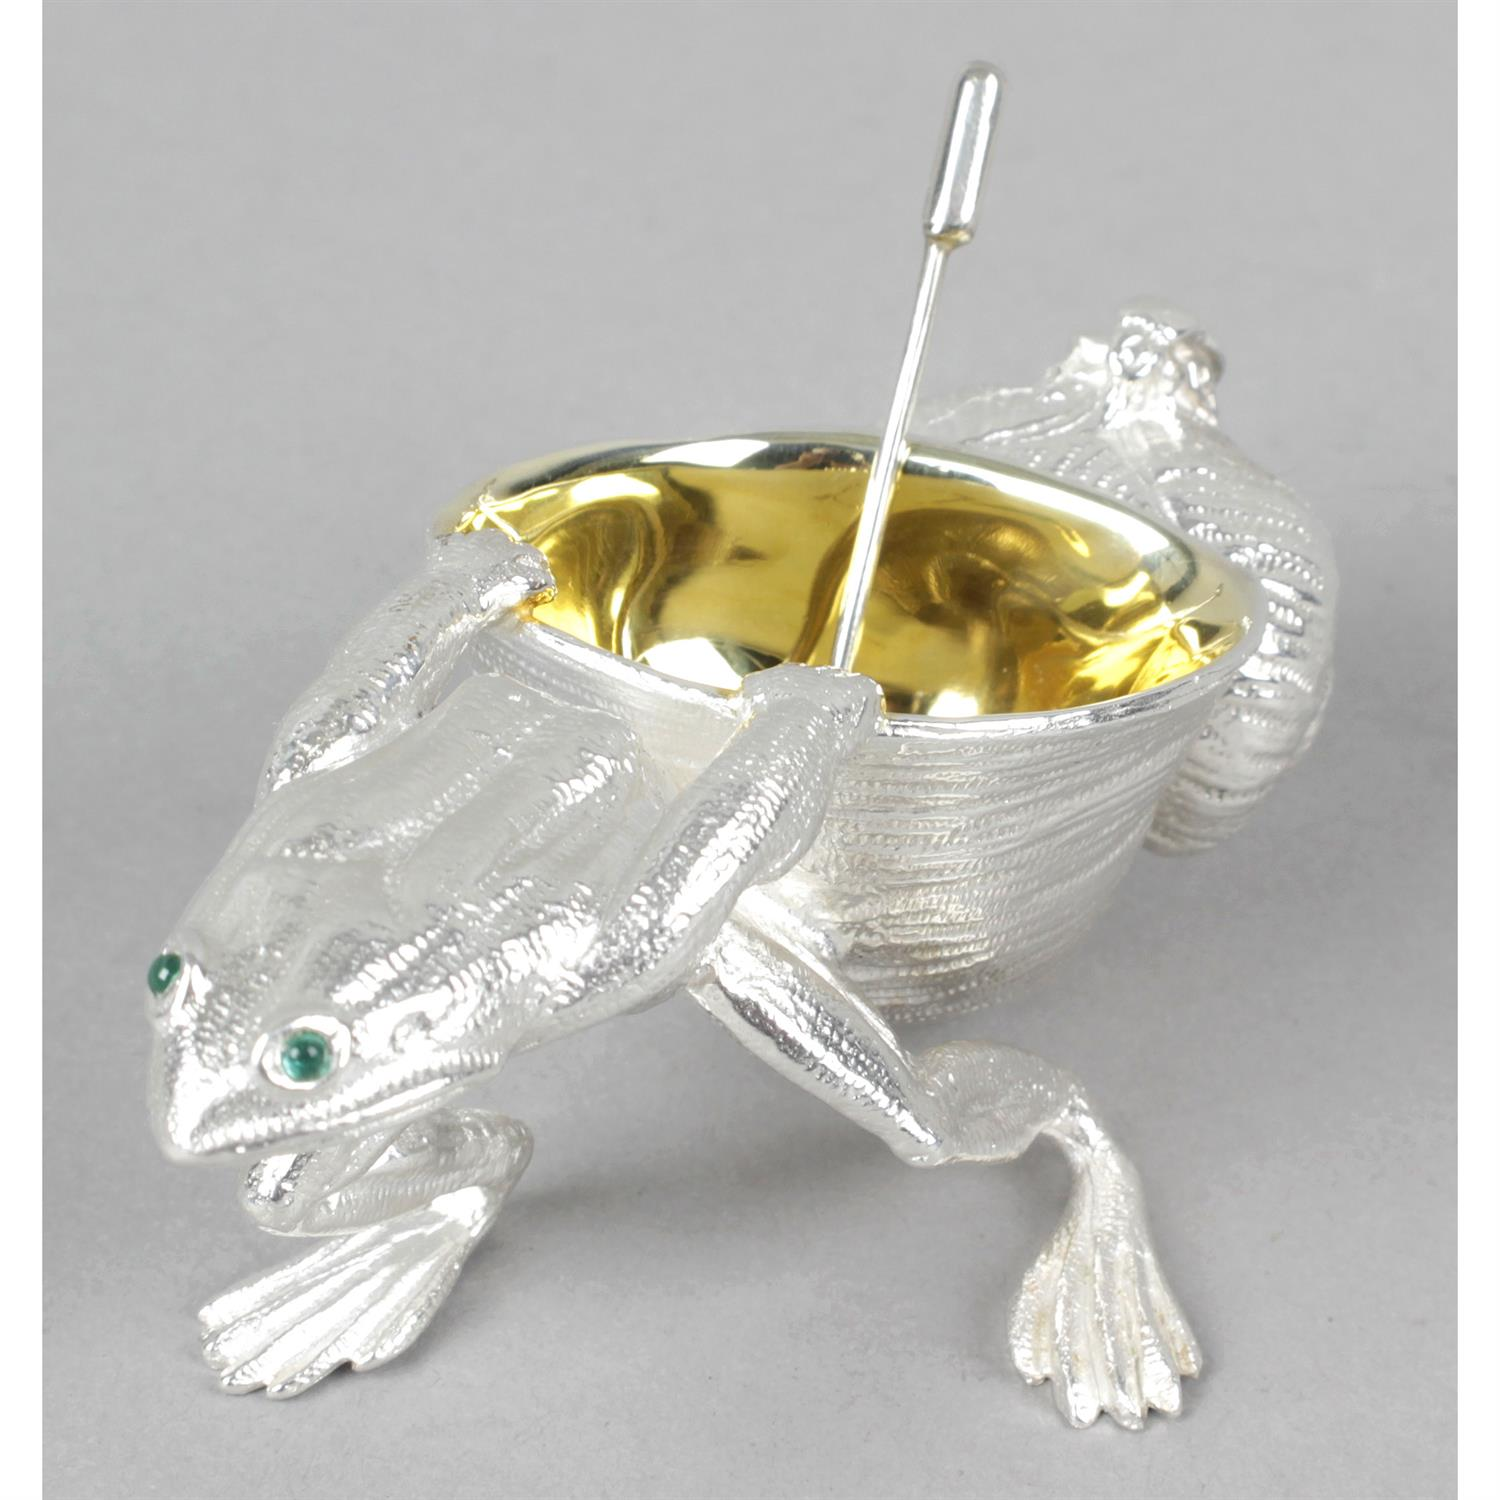 A novelty silver open salt modelled as a frog and shell. - Image 2 of 2